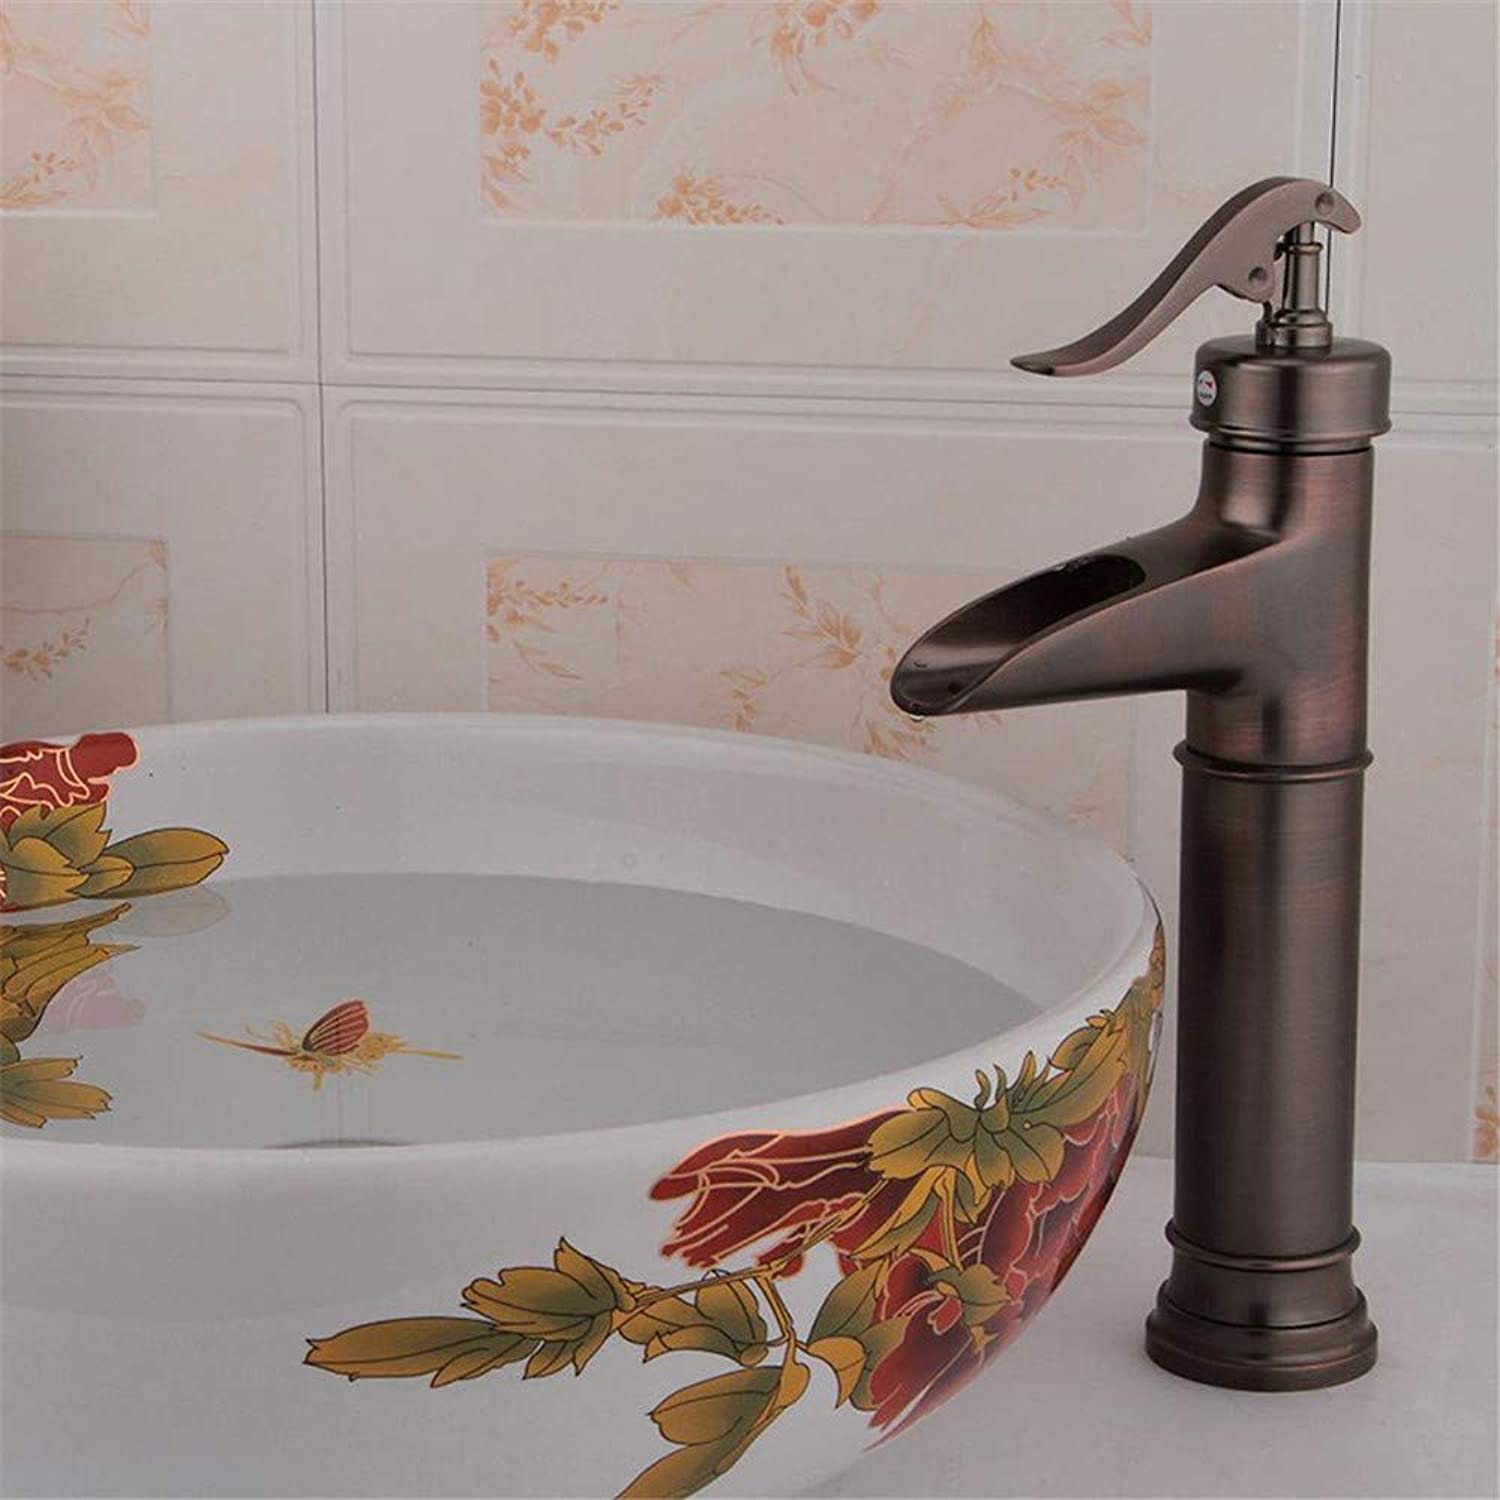 Oudan Antique gold-Plated Faucets Classic European-Style Fashion Mix Faucet Sanitary Ware Basin Faucet (color   -, Size   -)